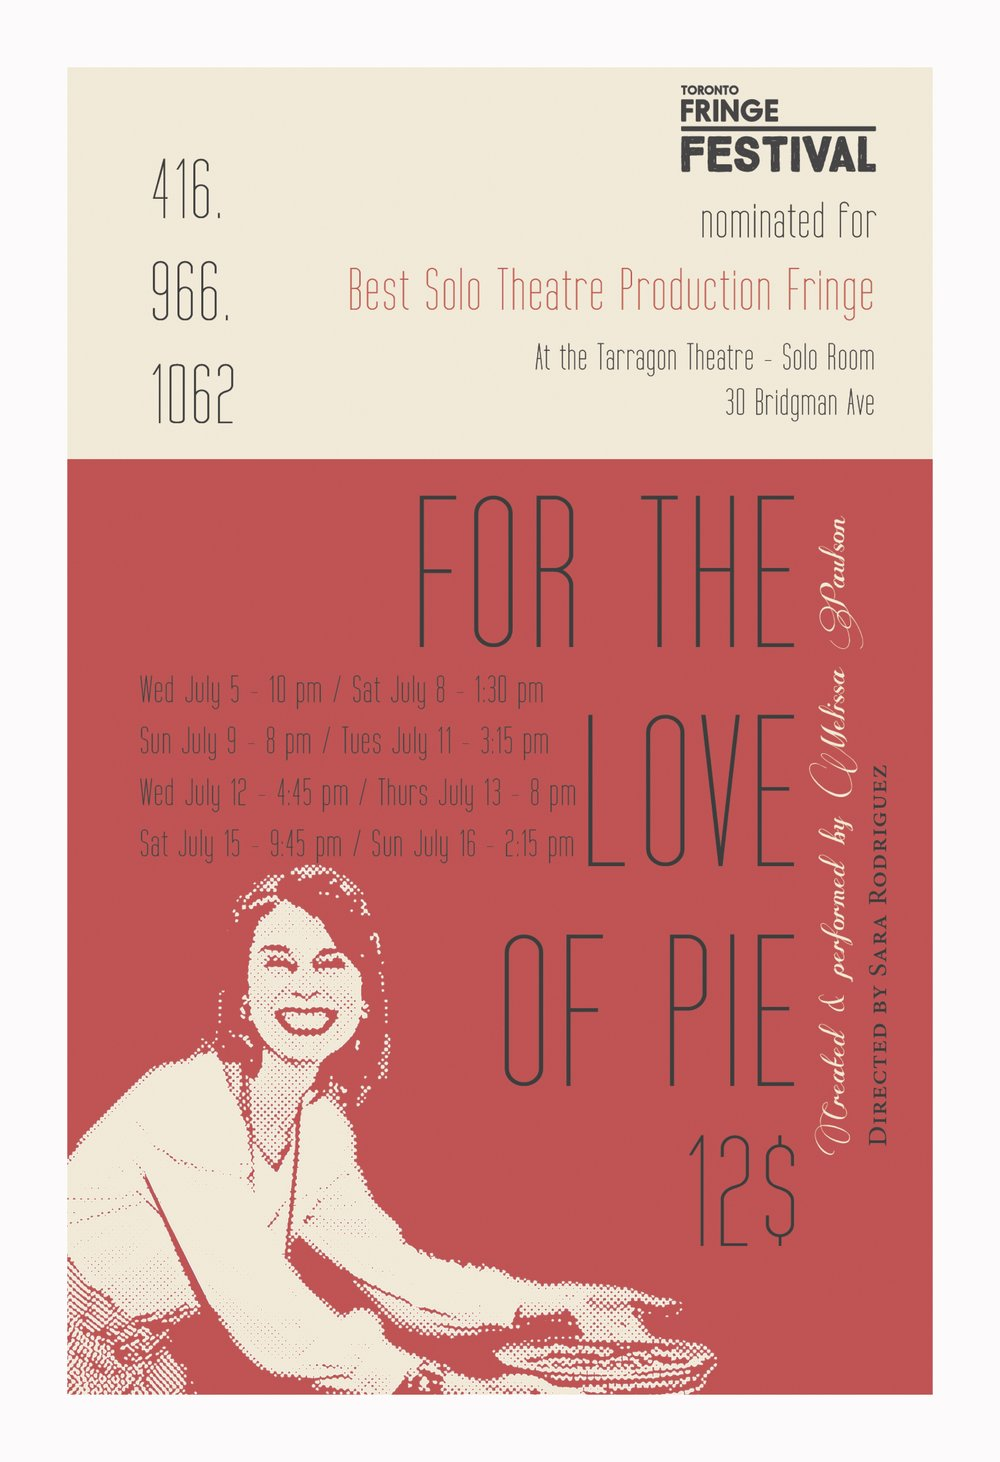 For the Love of Pie - https://fringetoronto.com/festivals/fringe/event/love-pie